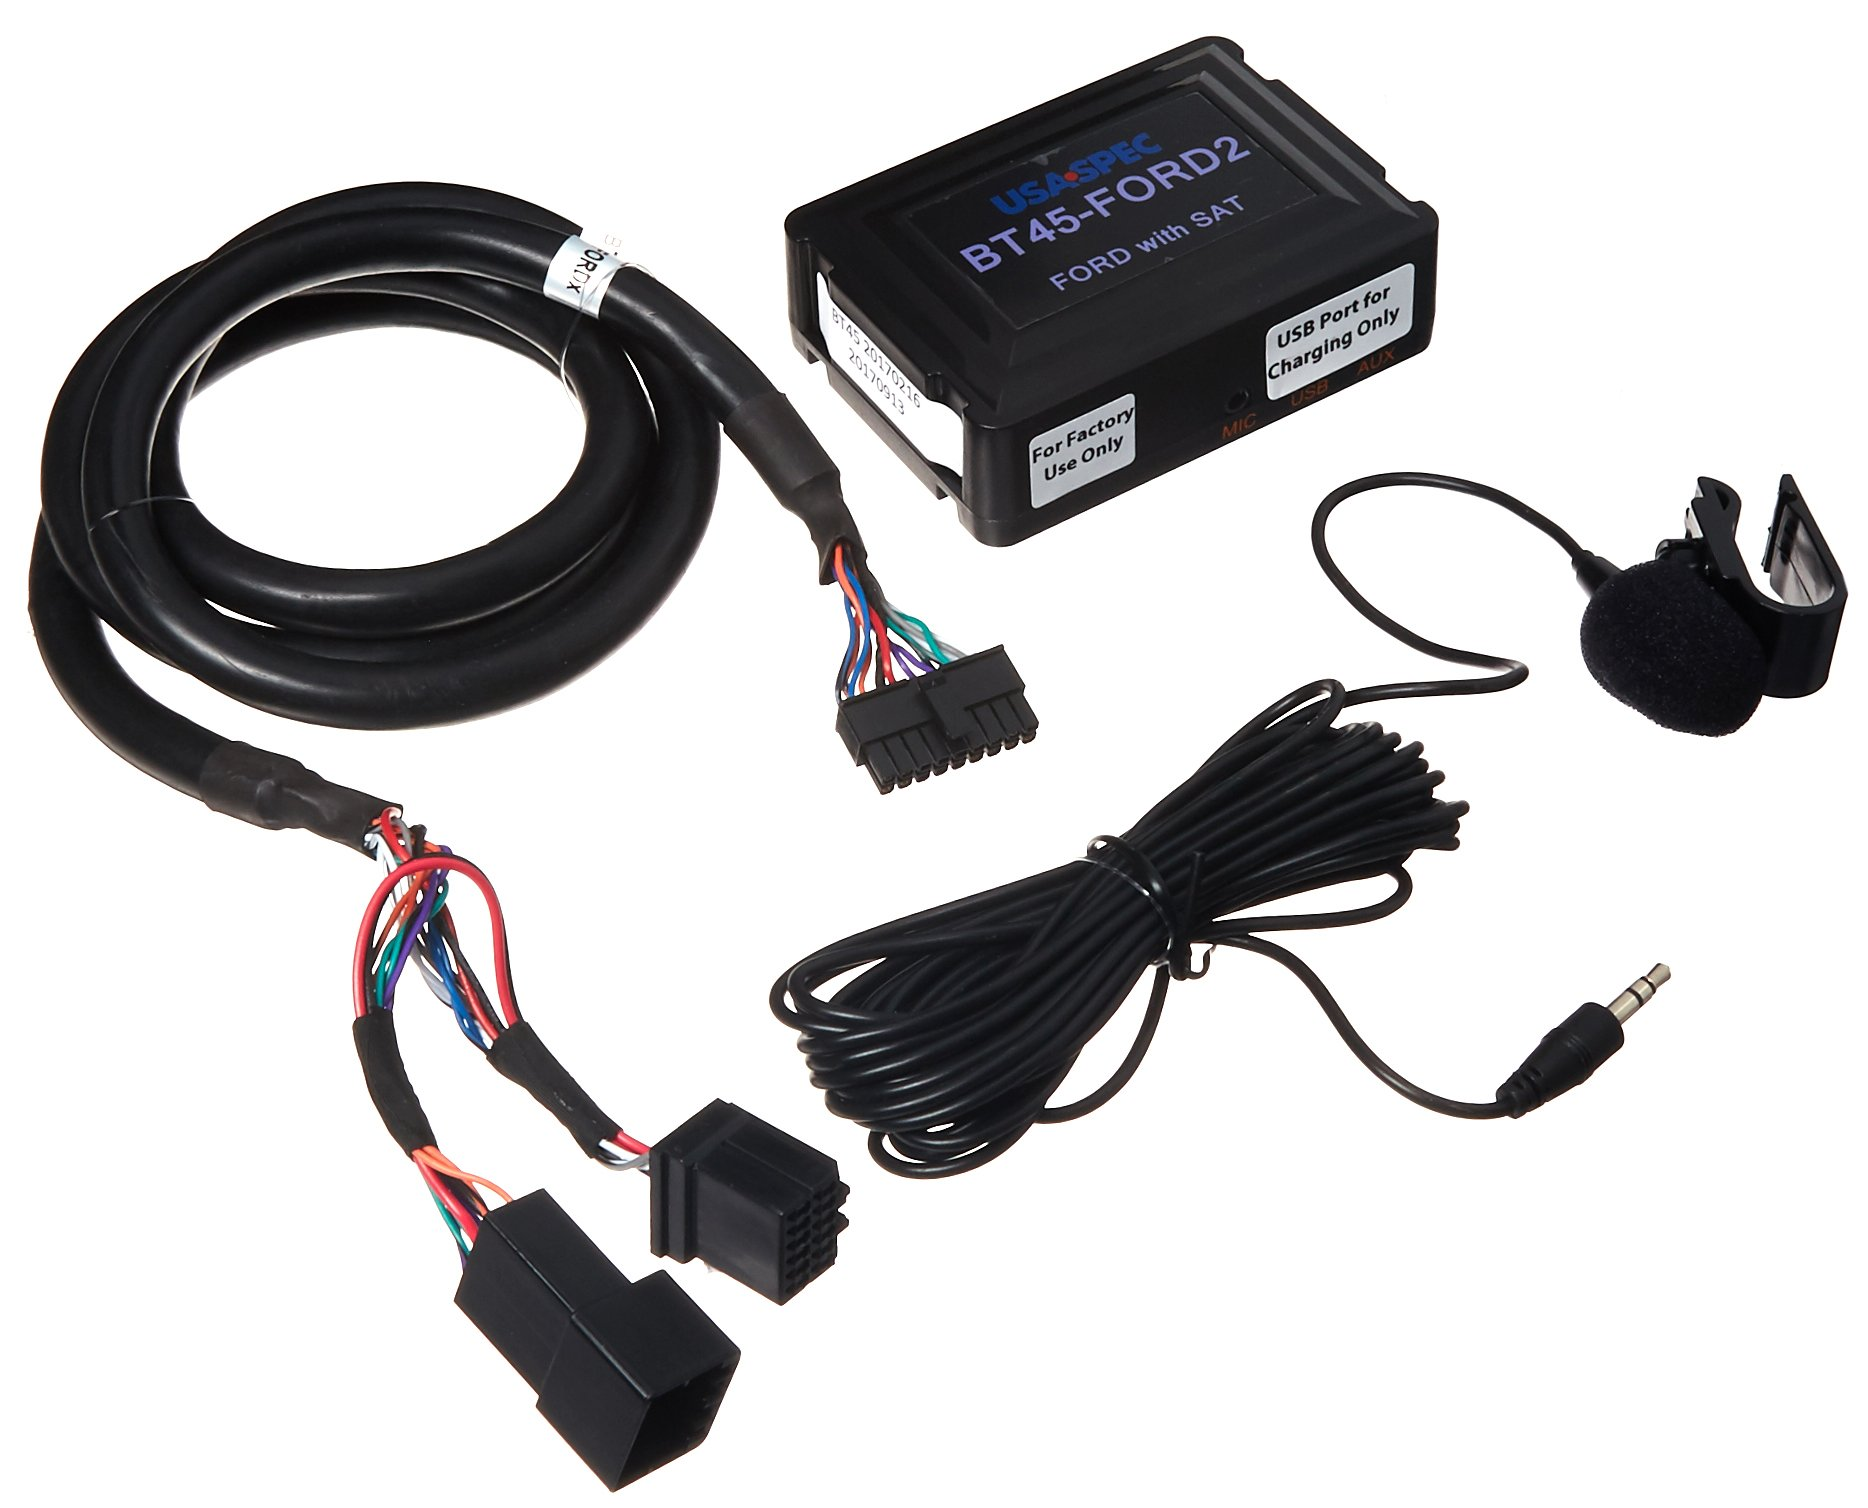 USA SPEC BT45-FORD2 Bluetooth Audio Interface for 2005-11 Ford, Lincoln, or Mercury vehicles with satellite radio